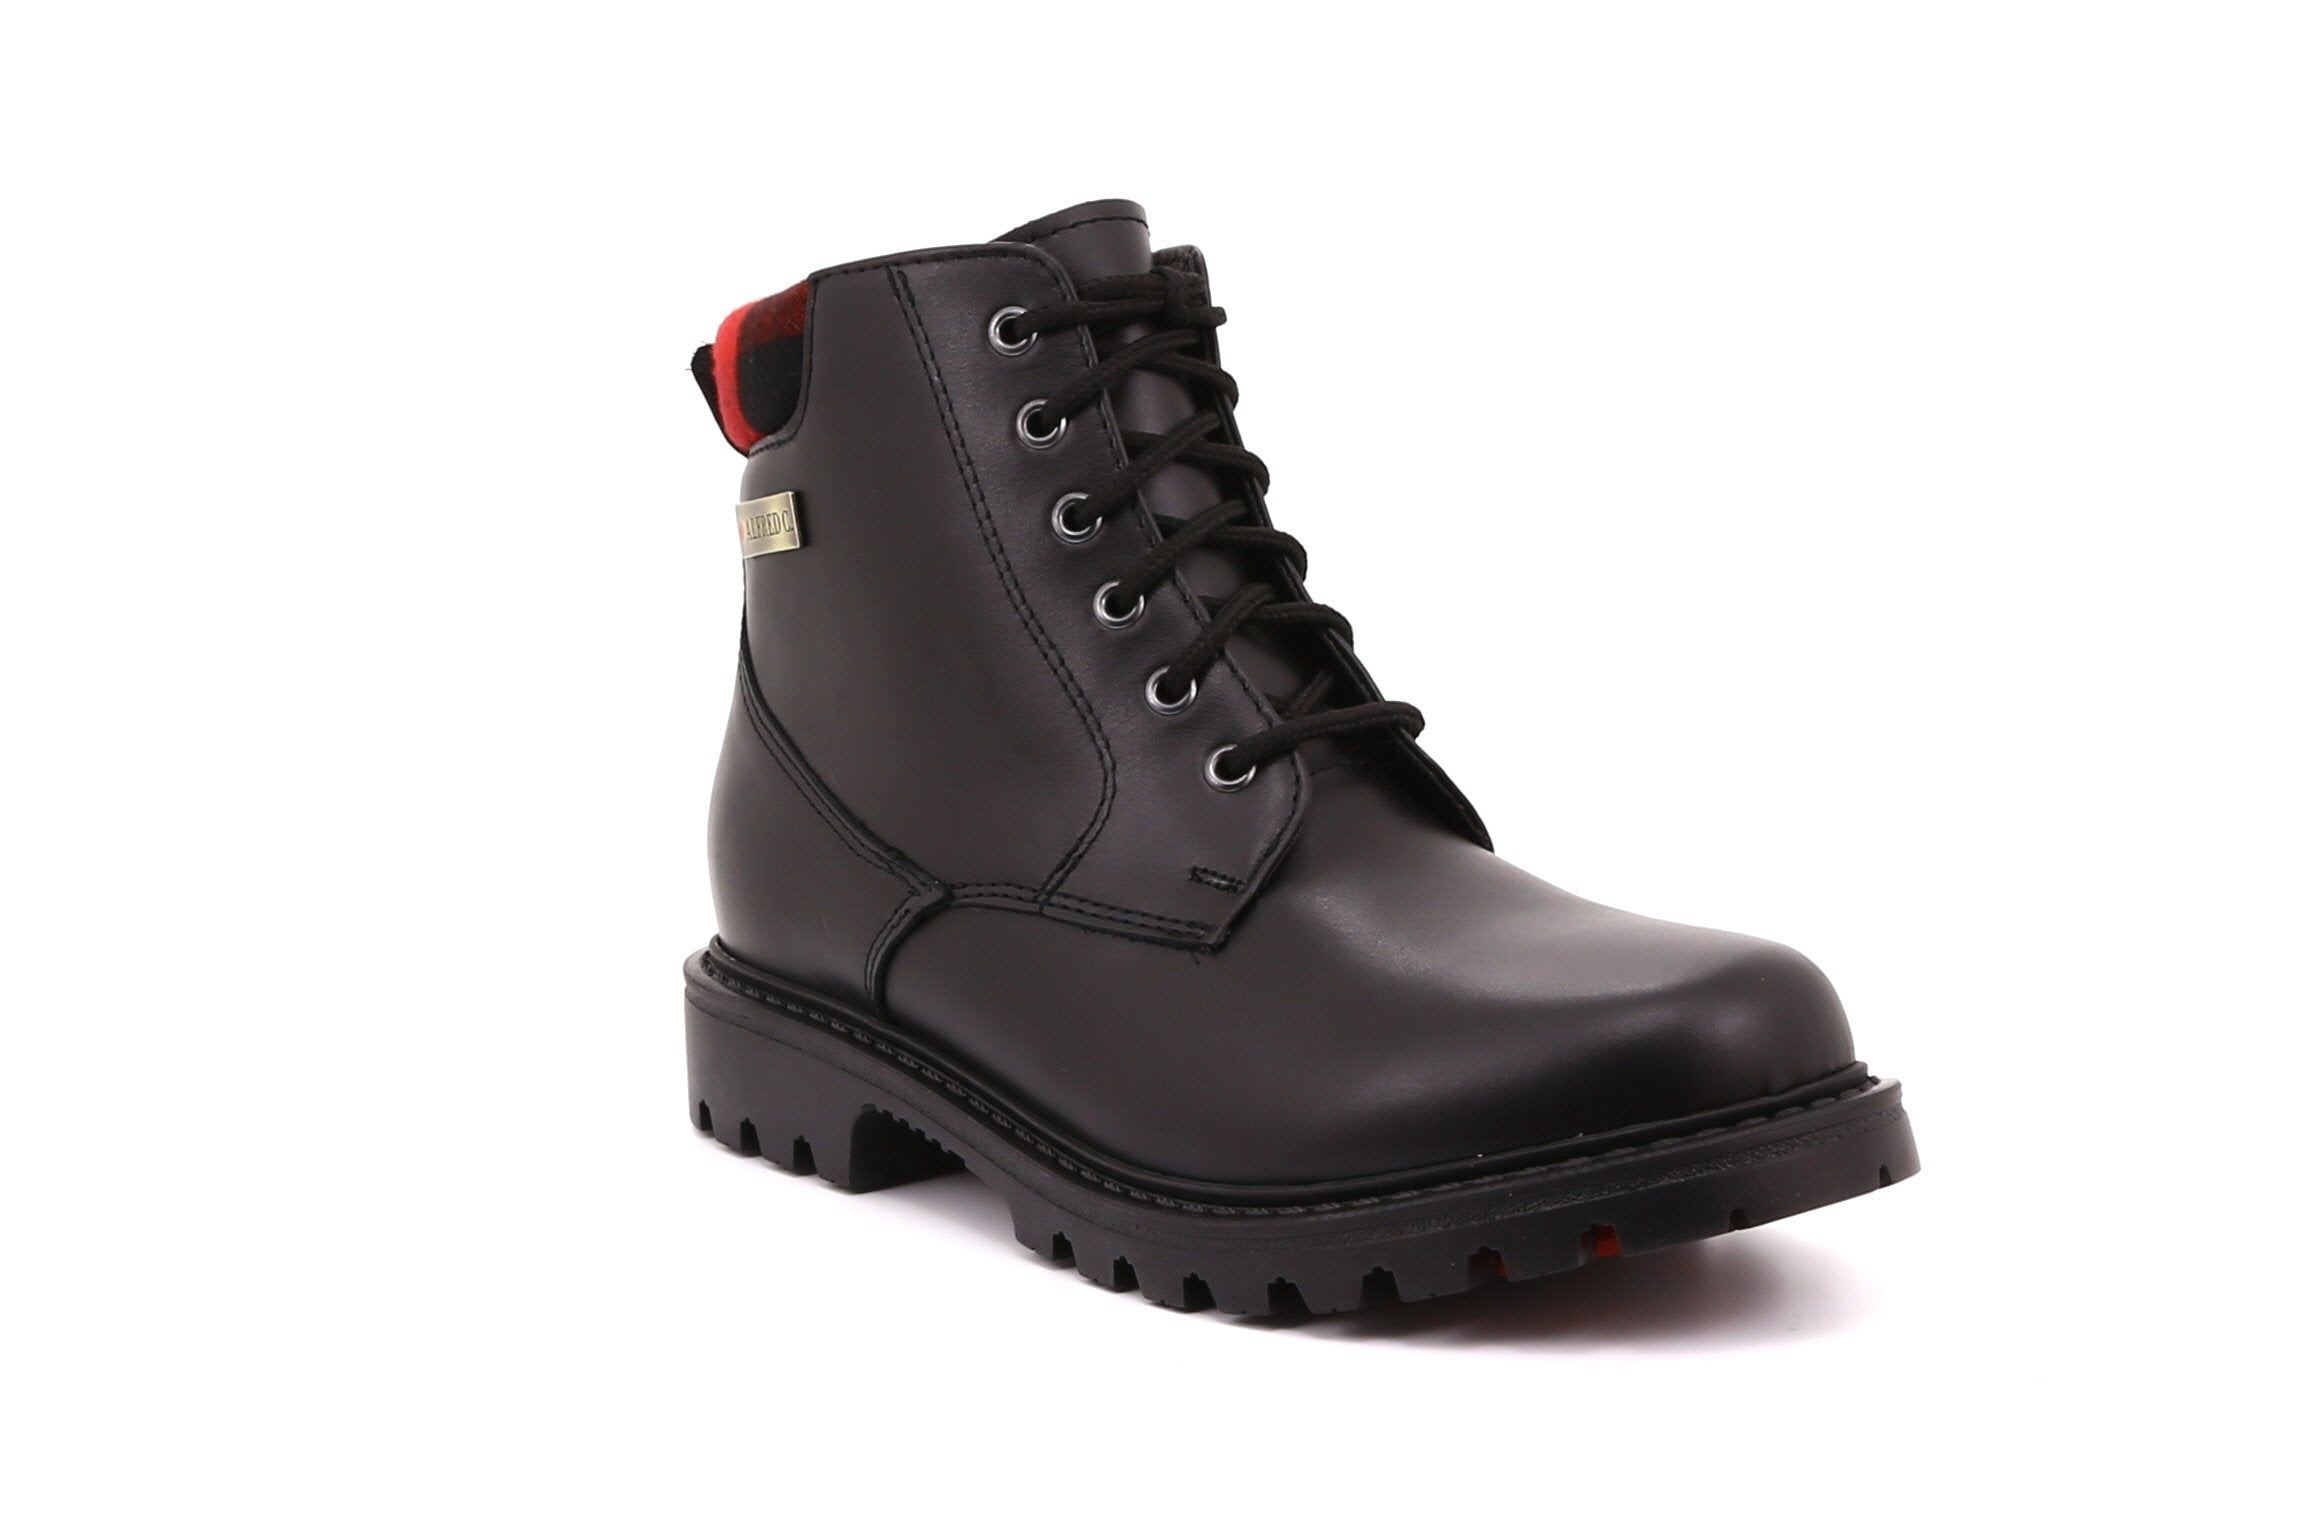 Matthew Men's Winter Boot with Retractable Cleats - Alfred Cloutier Ltd. - Canada